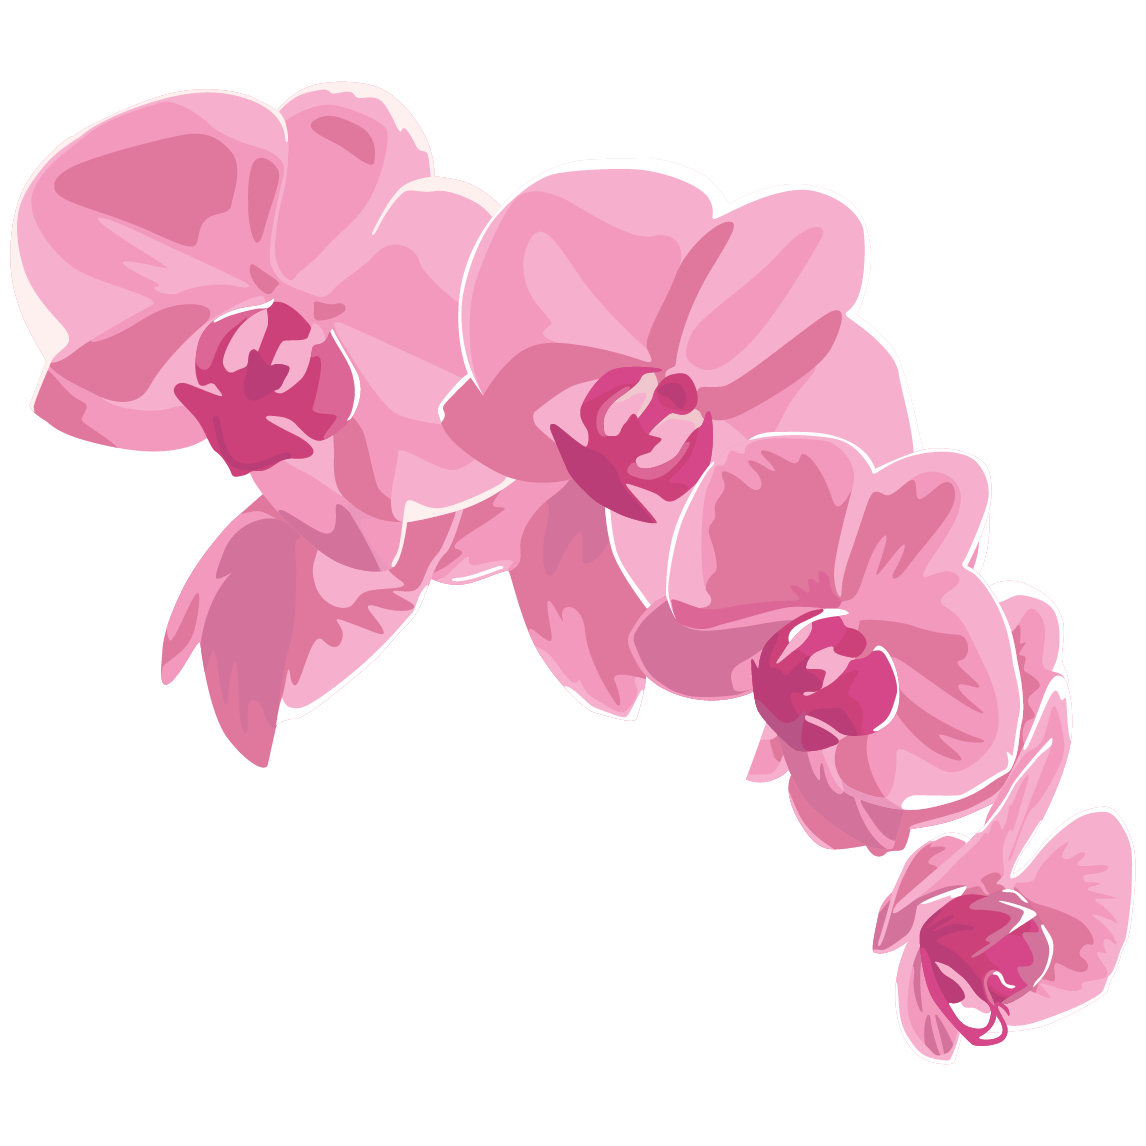 Pink orchid illustration